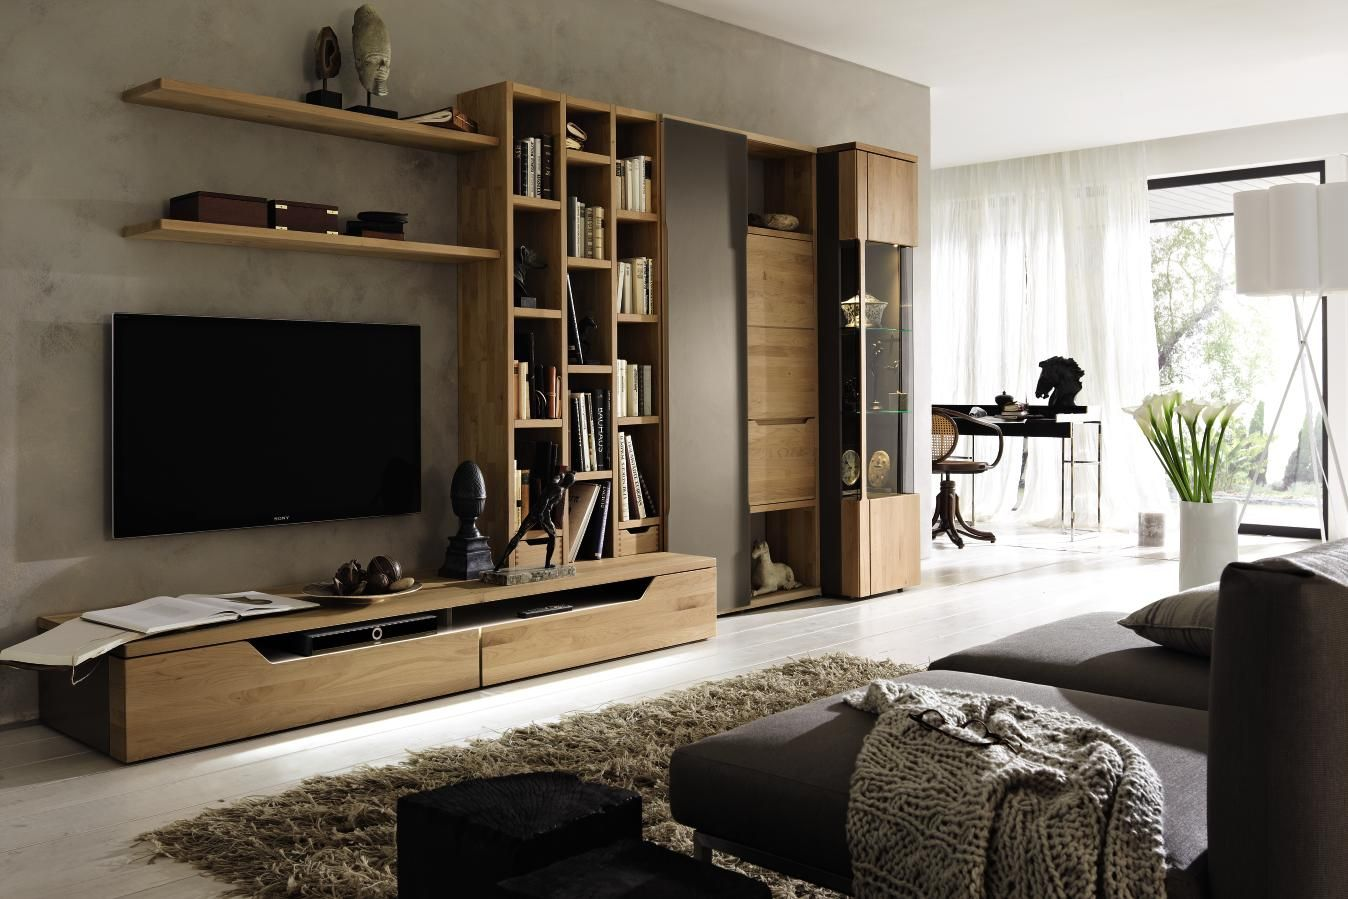 s jour carva h lsta laqu cacao aulne massif ch ne nature. Black Bedroom Furniture Sets. Home Design Ideas